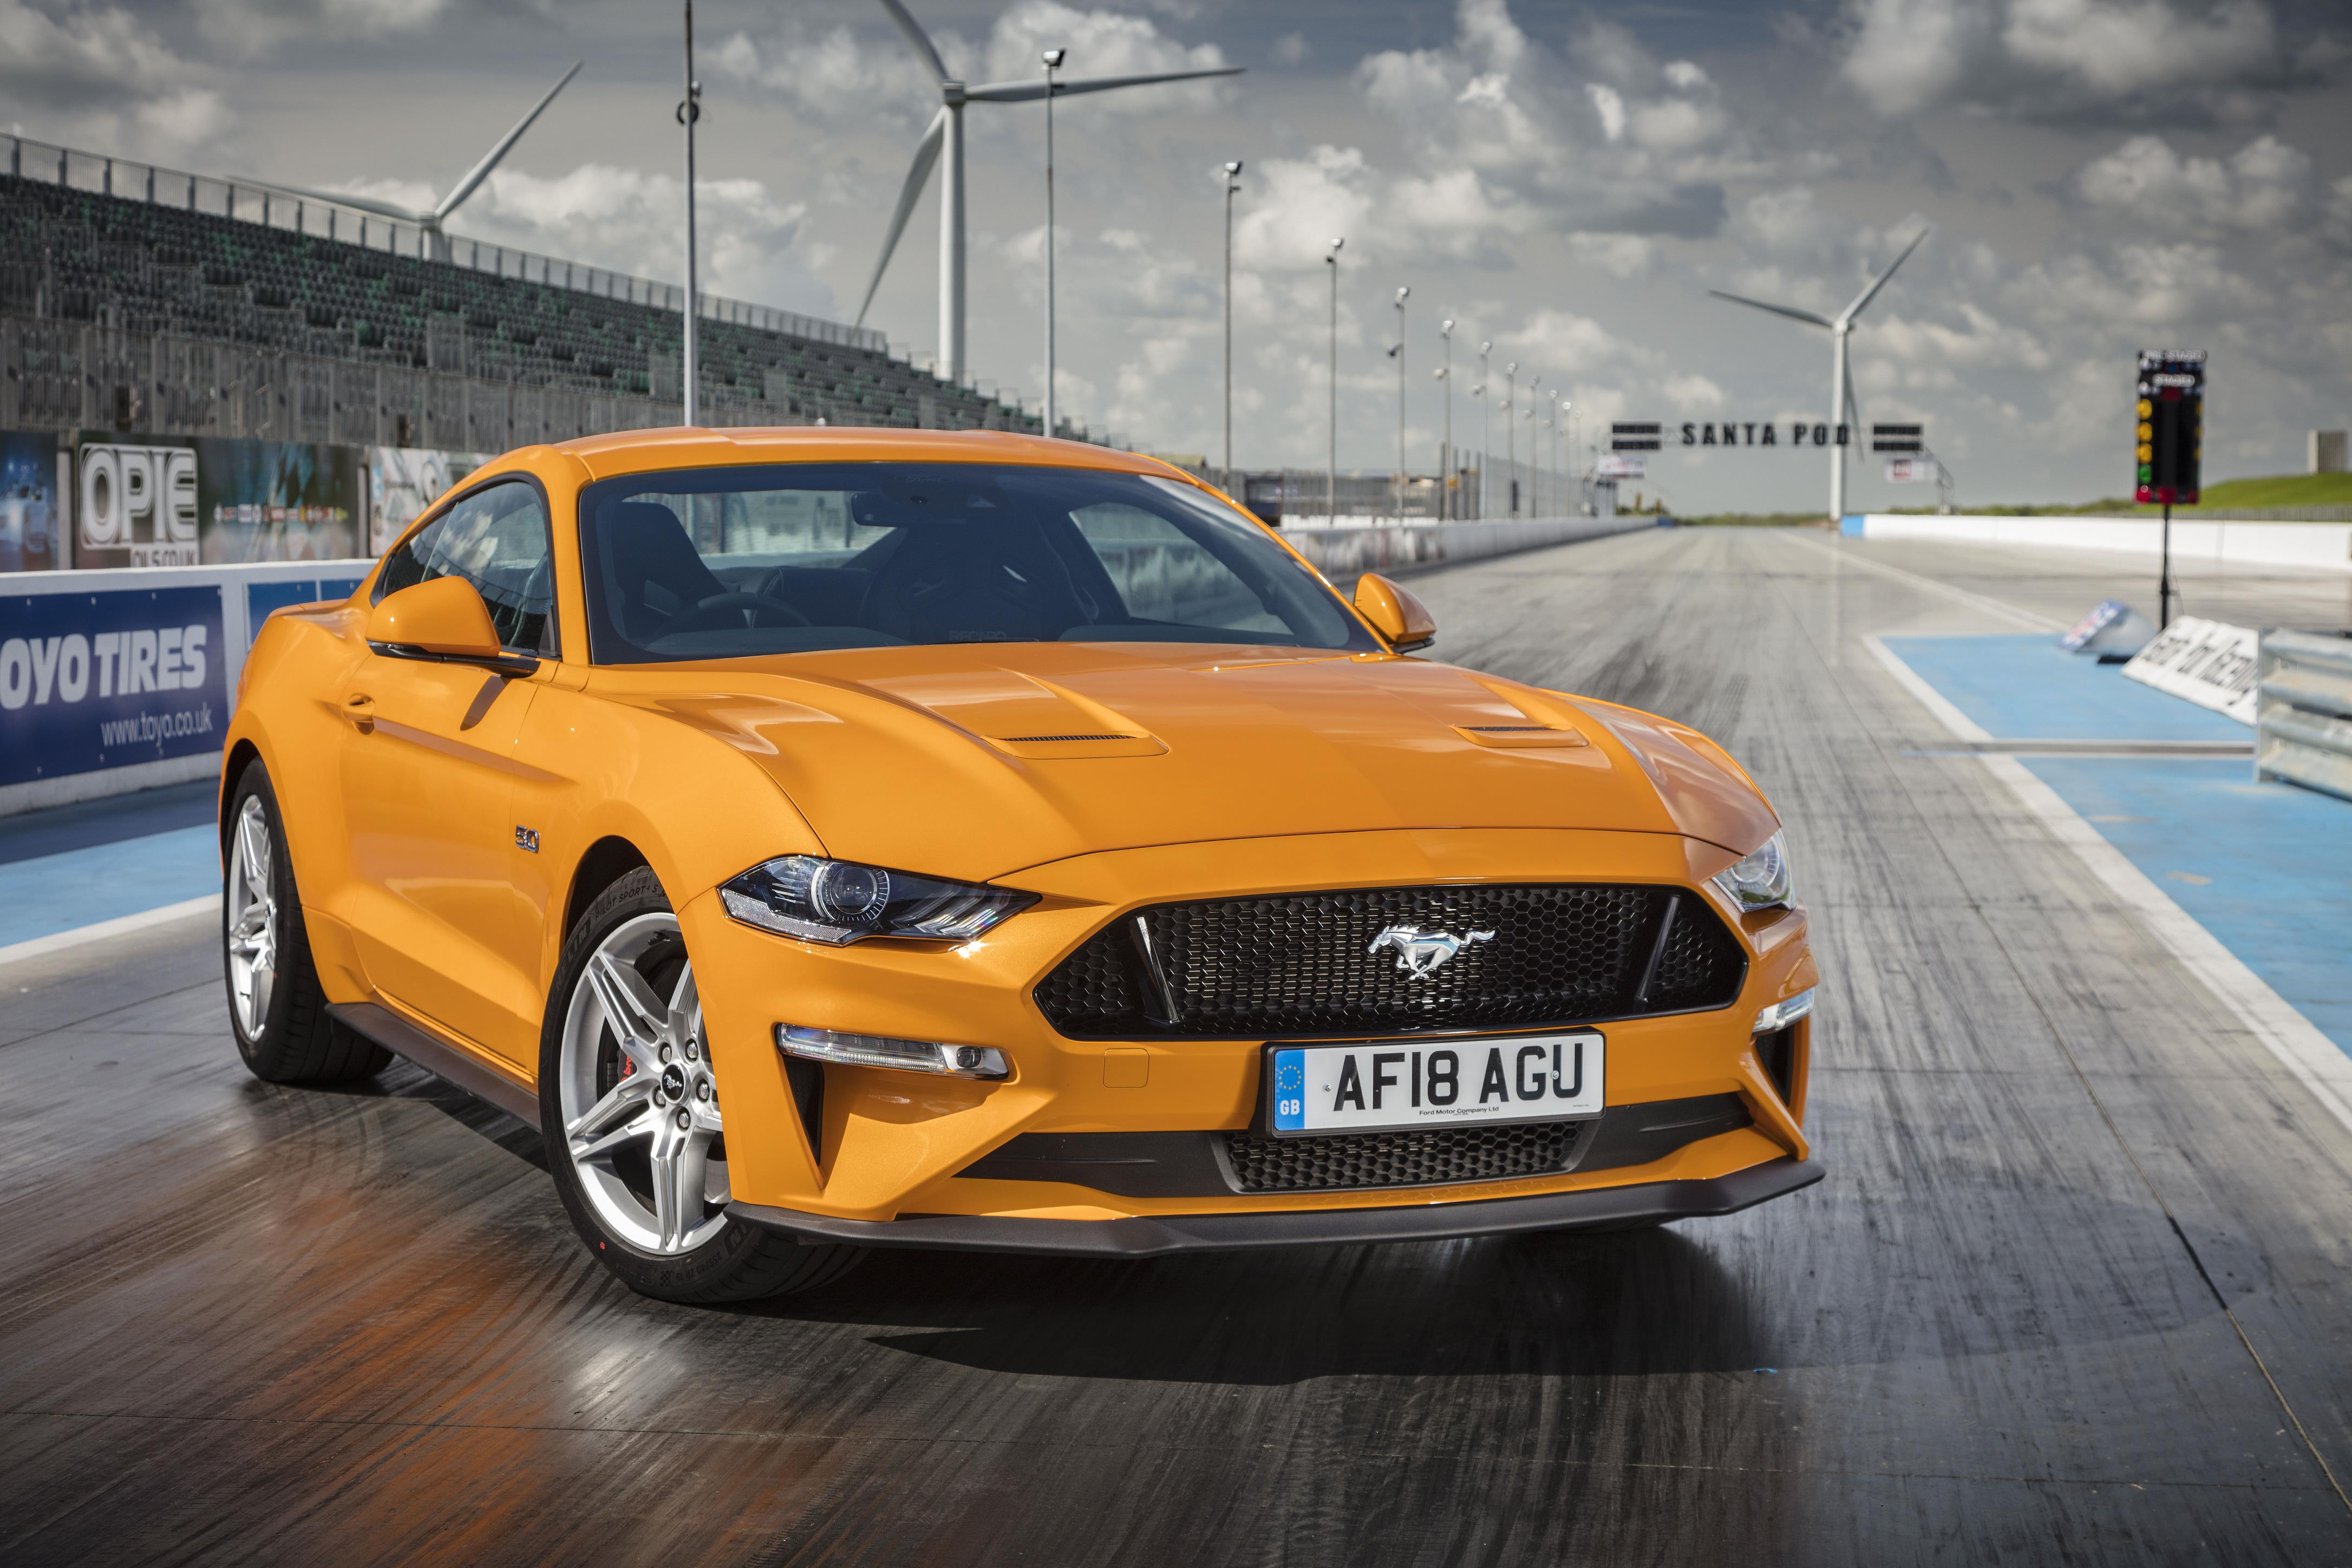 The ford mustang has had an upgrade to boost its popularity further